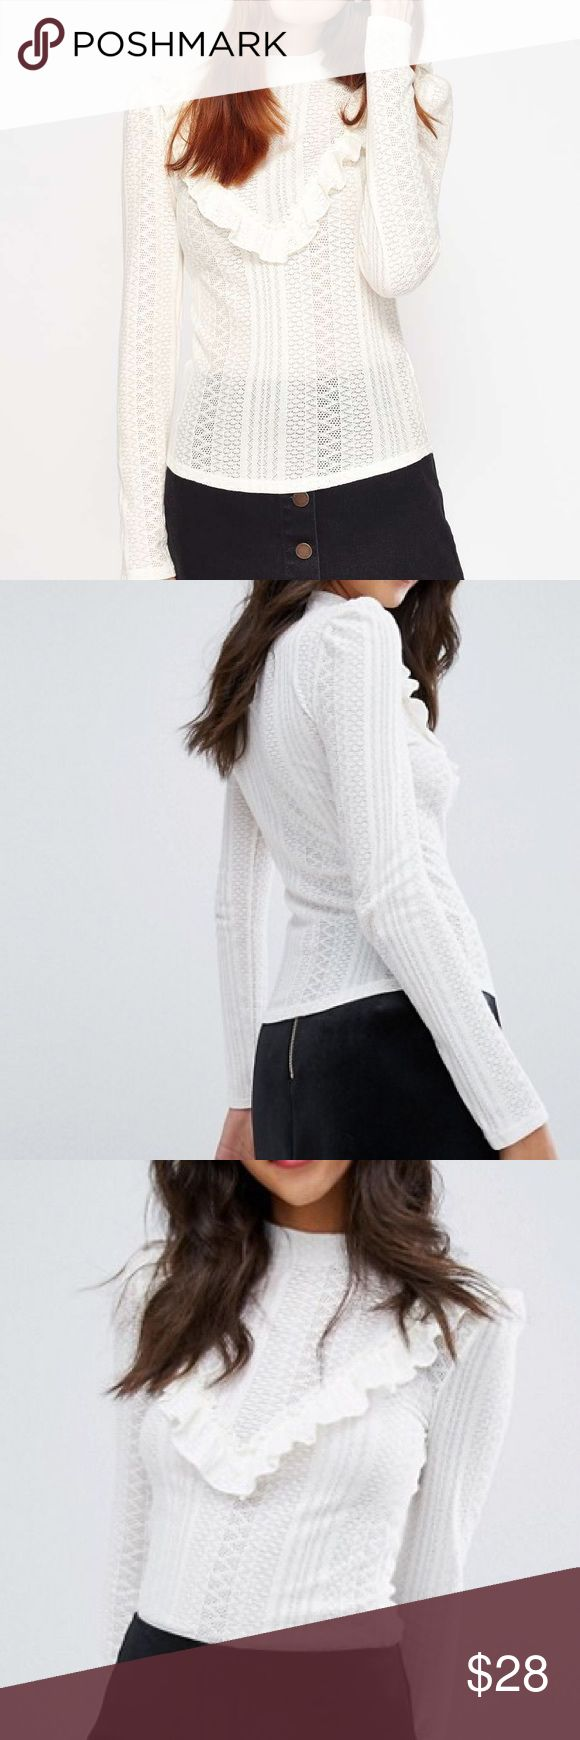 💥 New Fashion Cream ruffle long sleeve knit top Brand new with tag Miss Selfridge top. Size: 6 Color:Cream Pointelle knit High neck Ruffle detail Regular fit - true to size Machine wash 67% Cotton, 33% Polyester miss selfridge  Tops